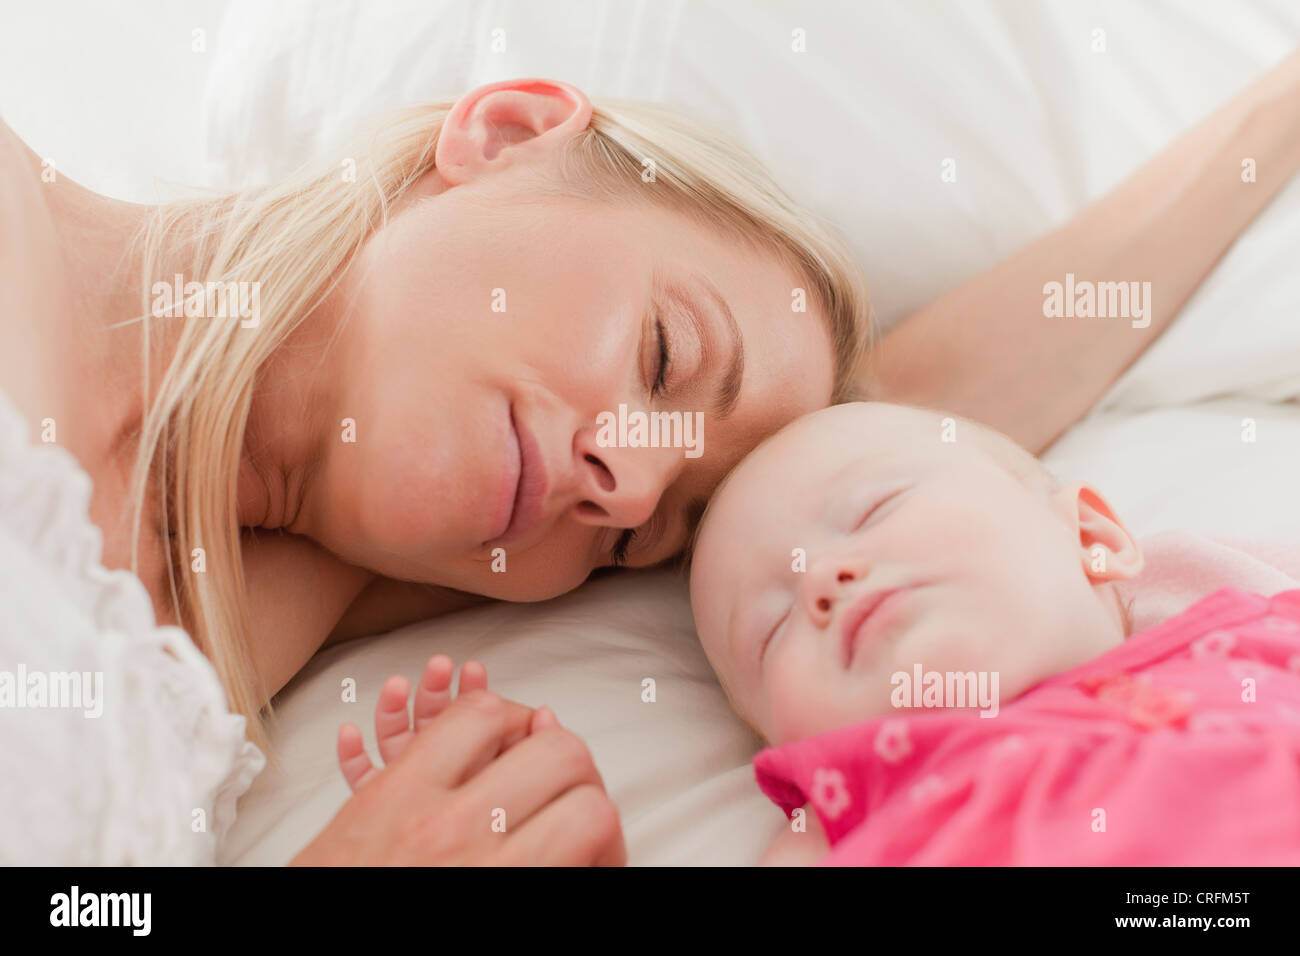 Mother and baby sleeping on bed - Stock Image